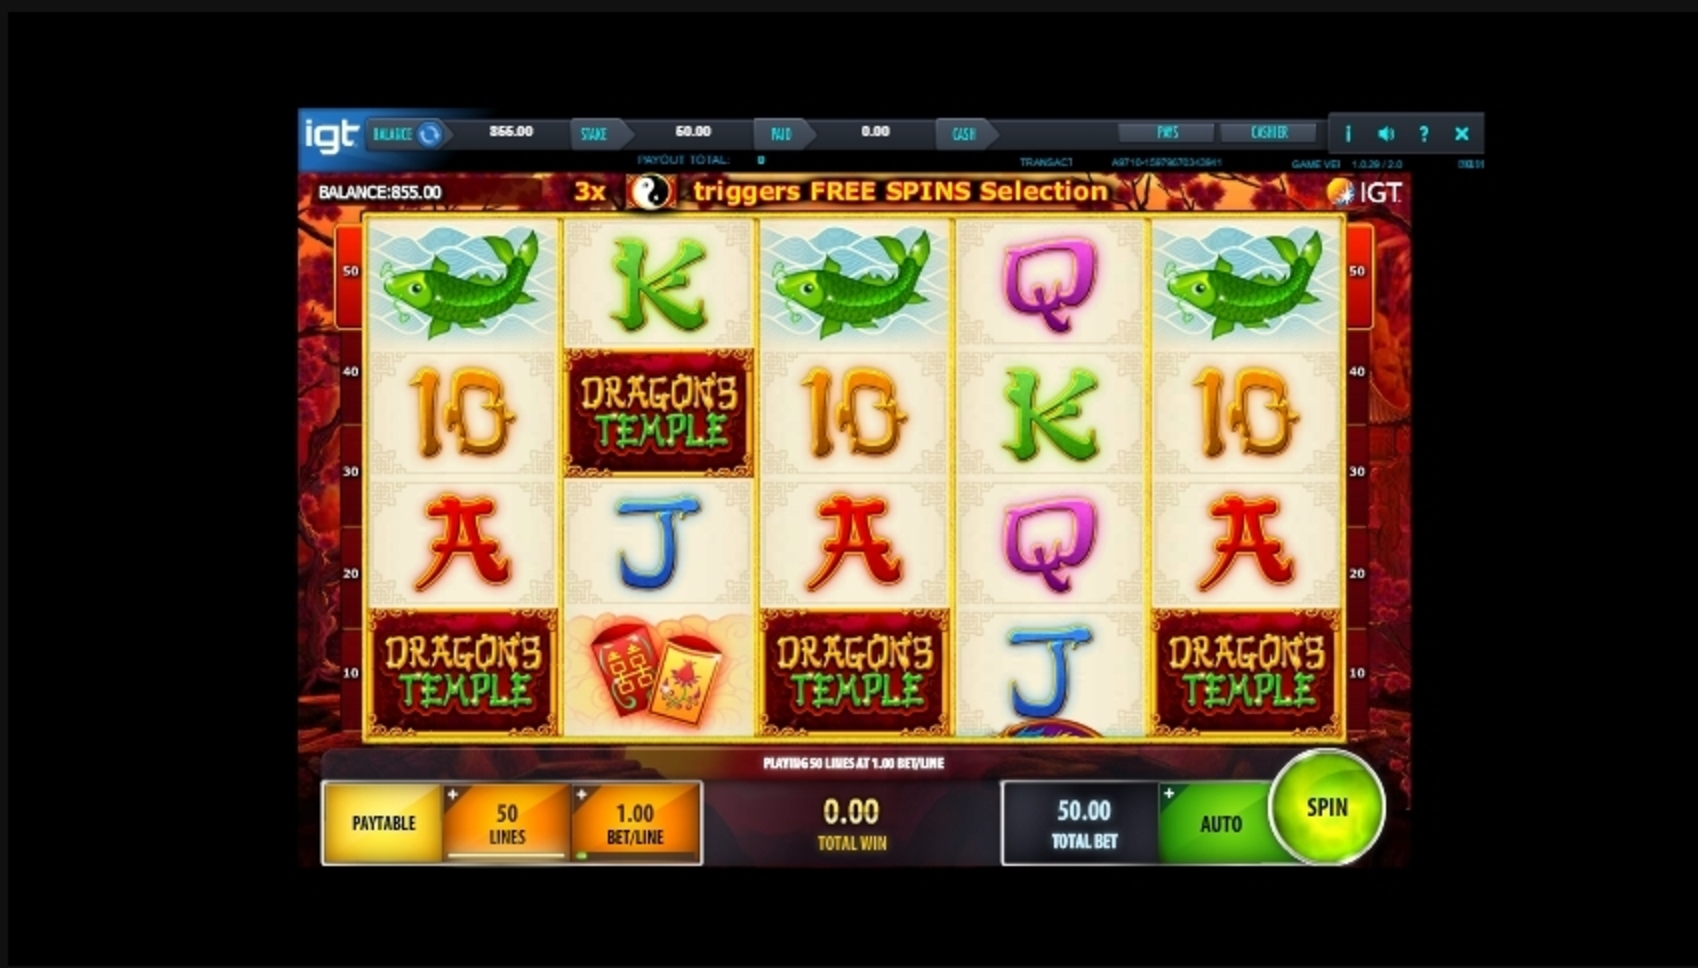 Reels in Dragon's Temple Slot Game by IGT